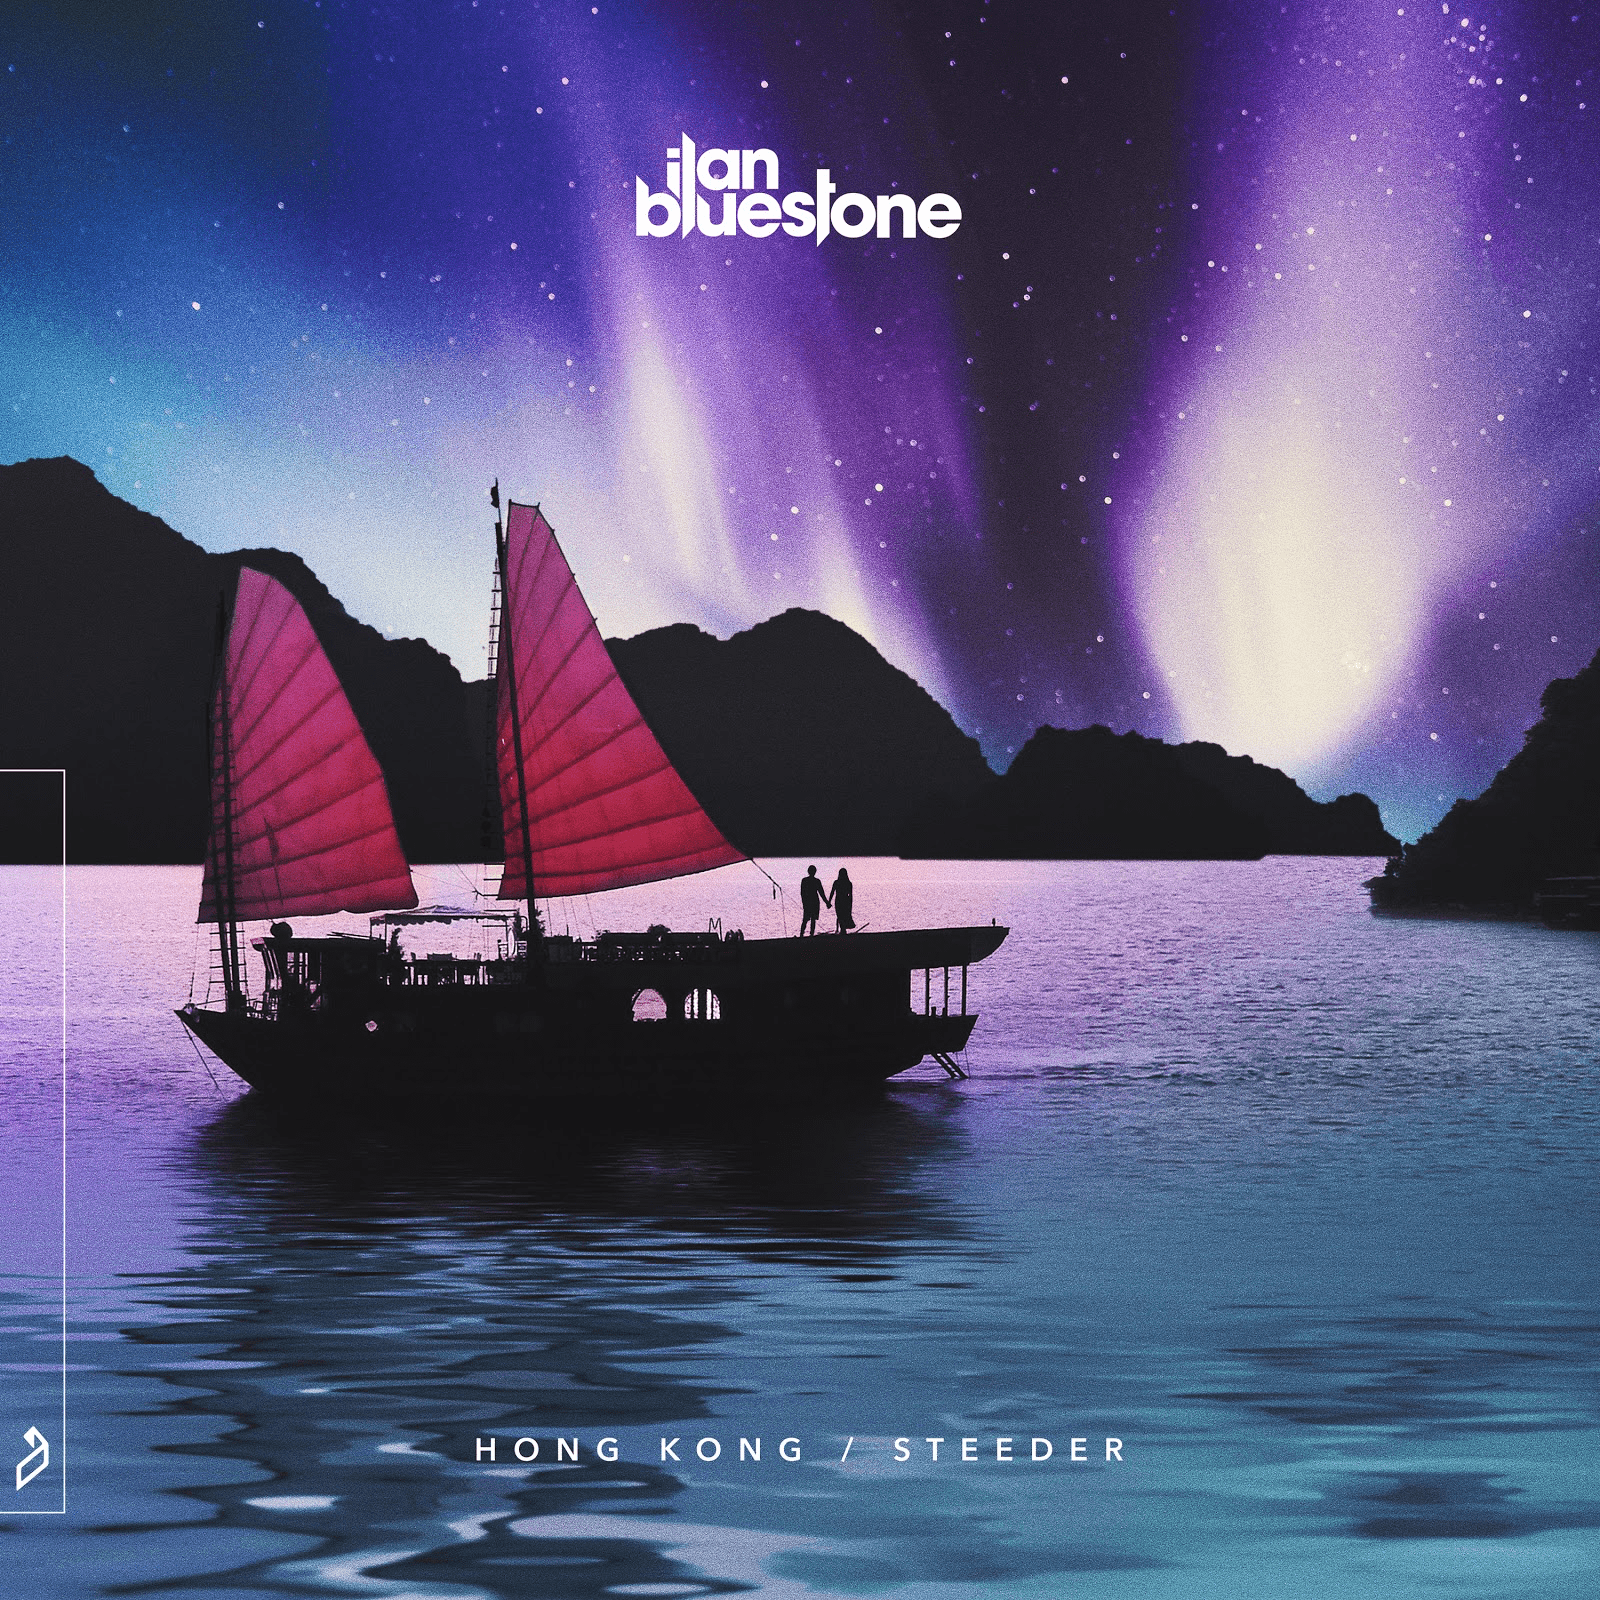 ilan Bluestone shares Hong Kong & Steeder ahead of Anjunabeats EP release We Are The Universe